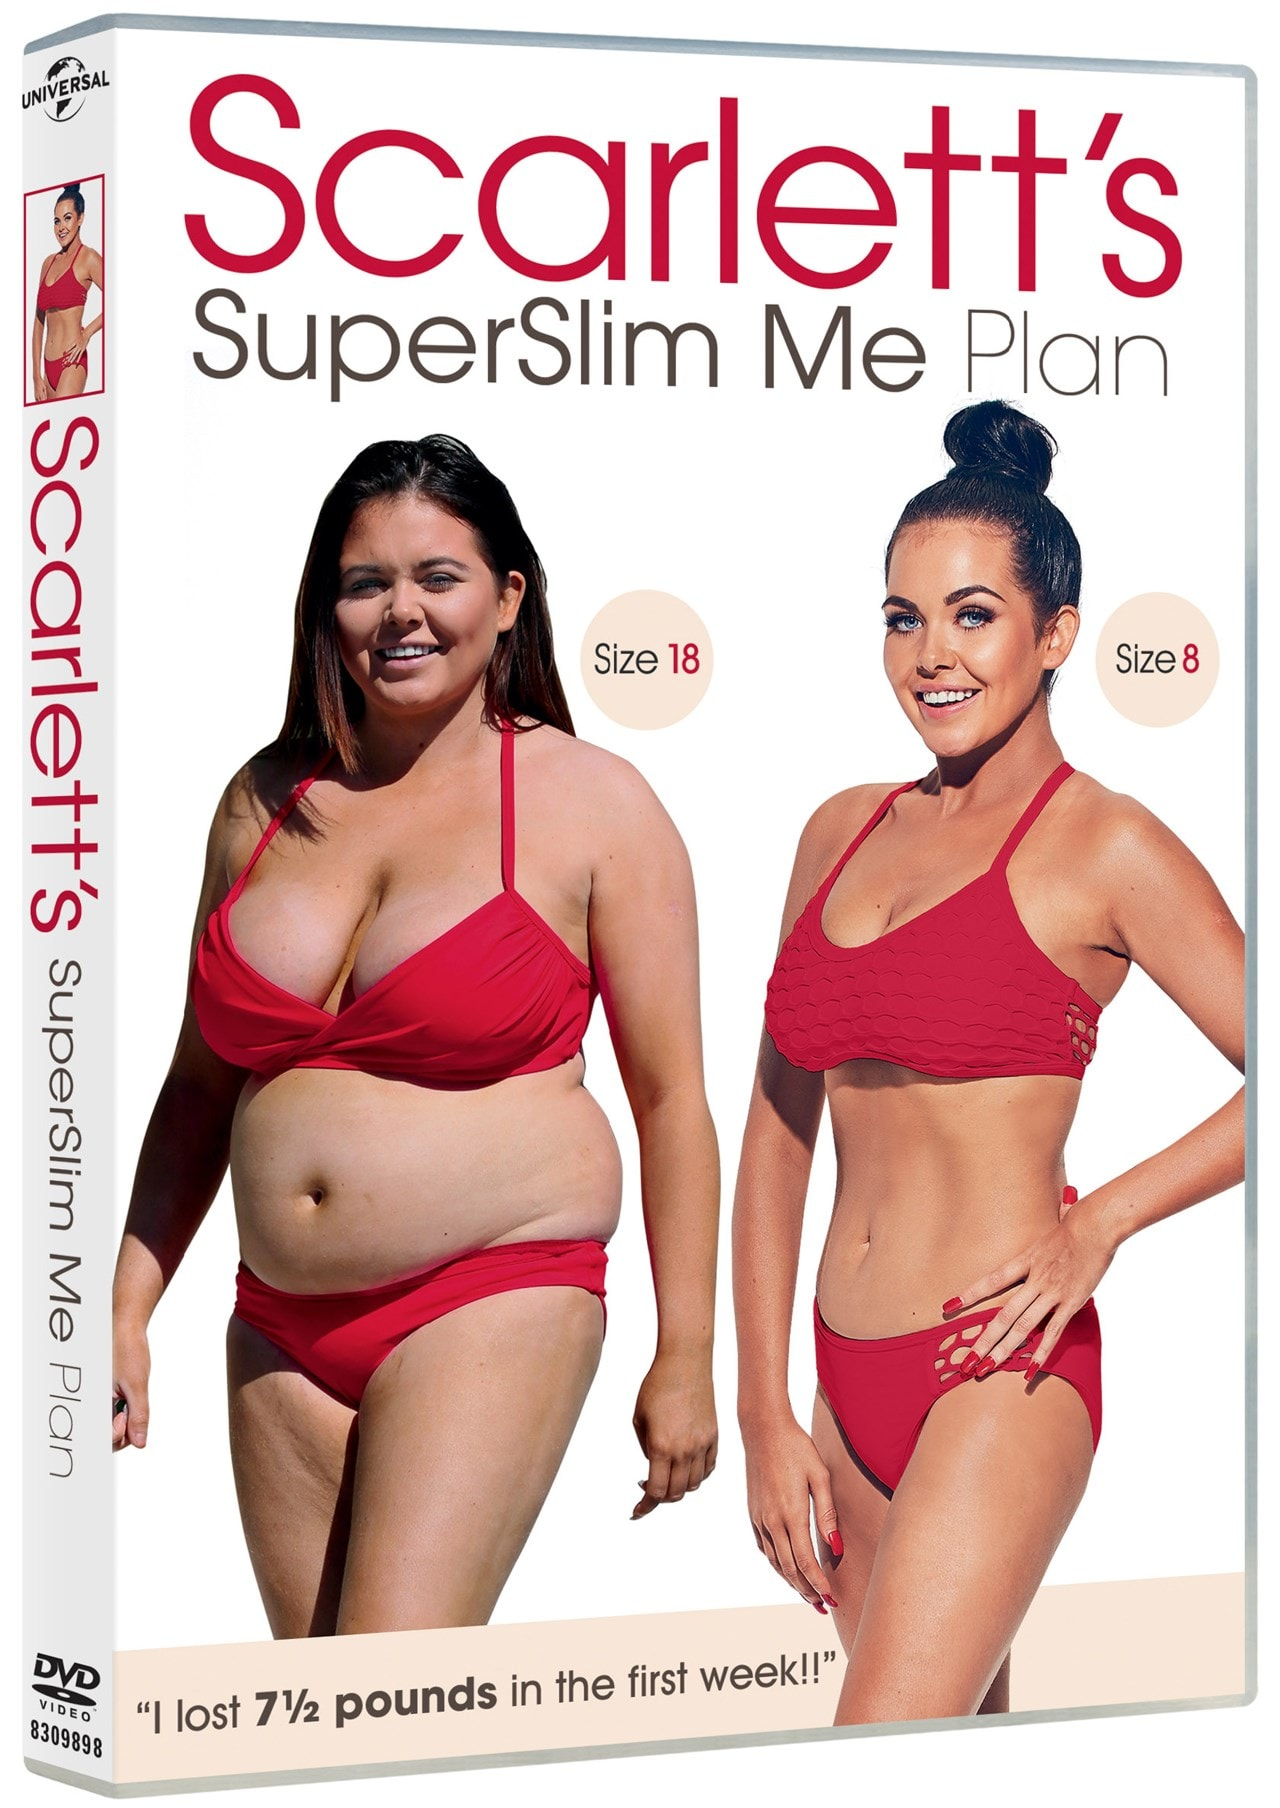 Scarlett's Superslim Me Plan - 2